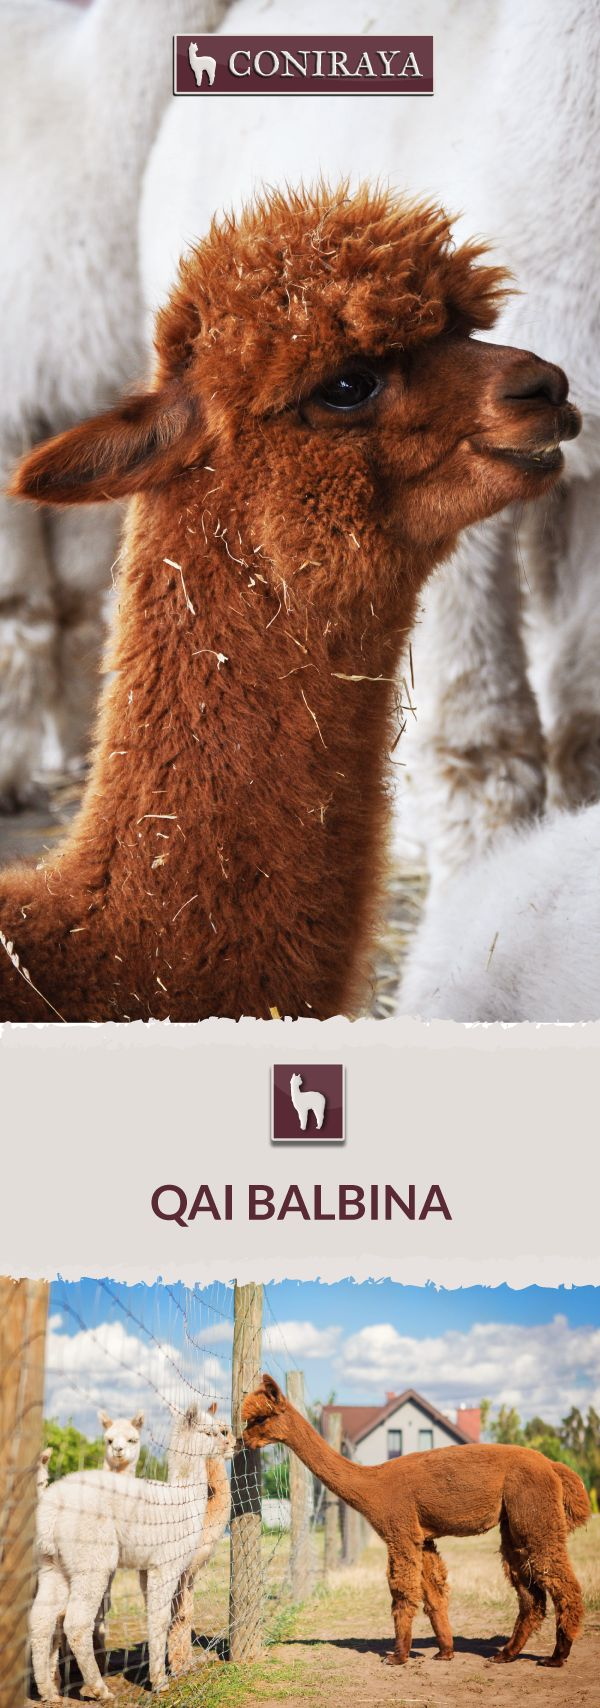 Meet Coniraya - QAI balbina. This Alpaca was born in 2014 and its fiber is in color: Brown. Check out more details on our site!